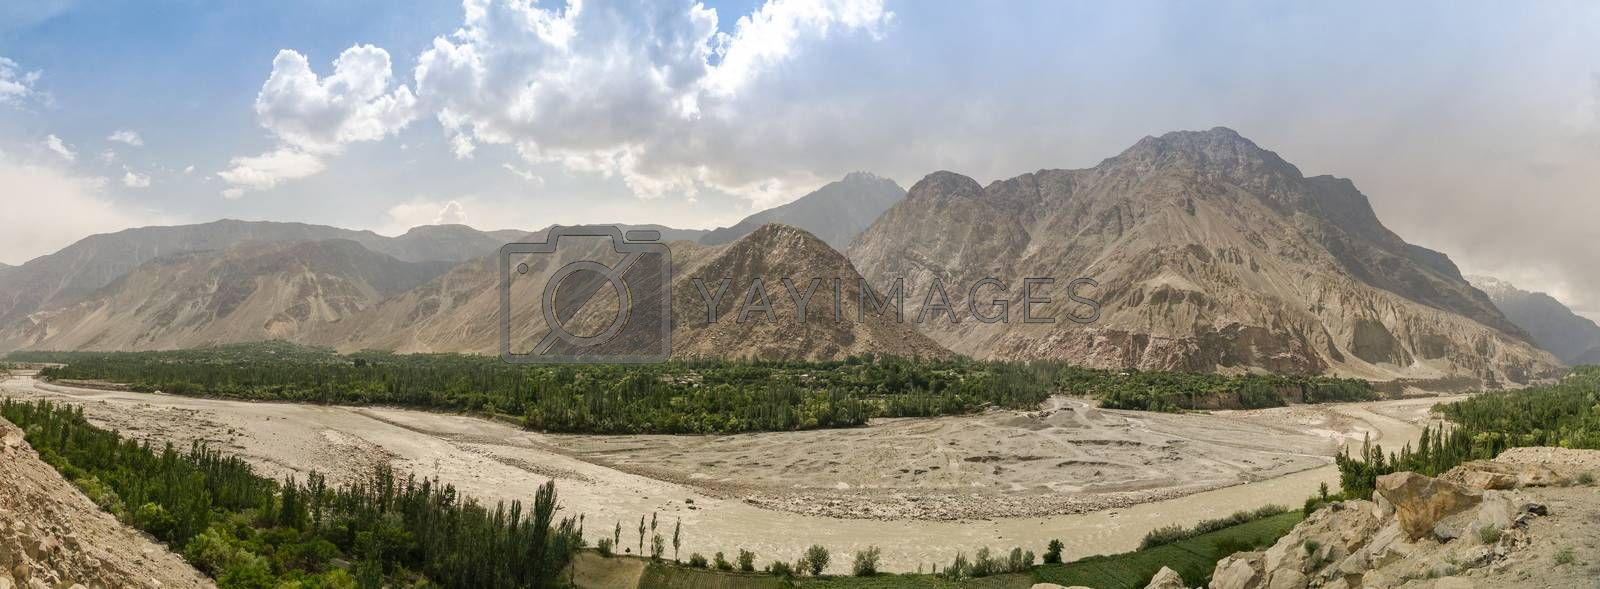 View to Hunza river and valley Pakistan by HomoCosmicos